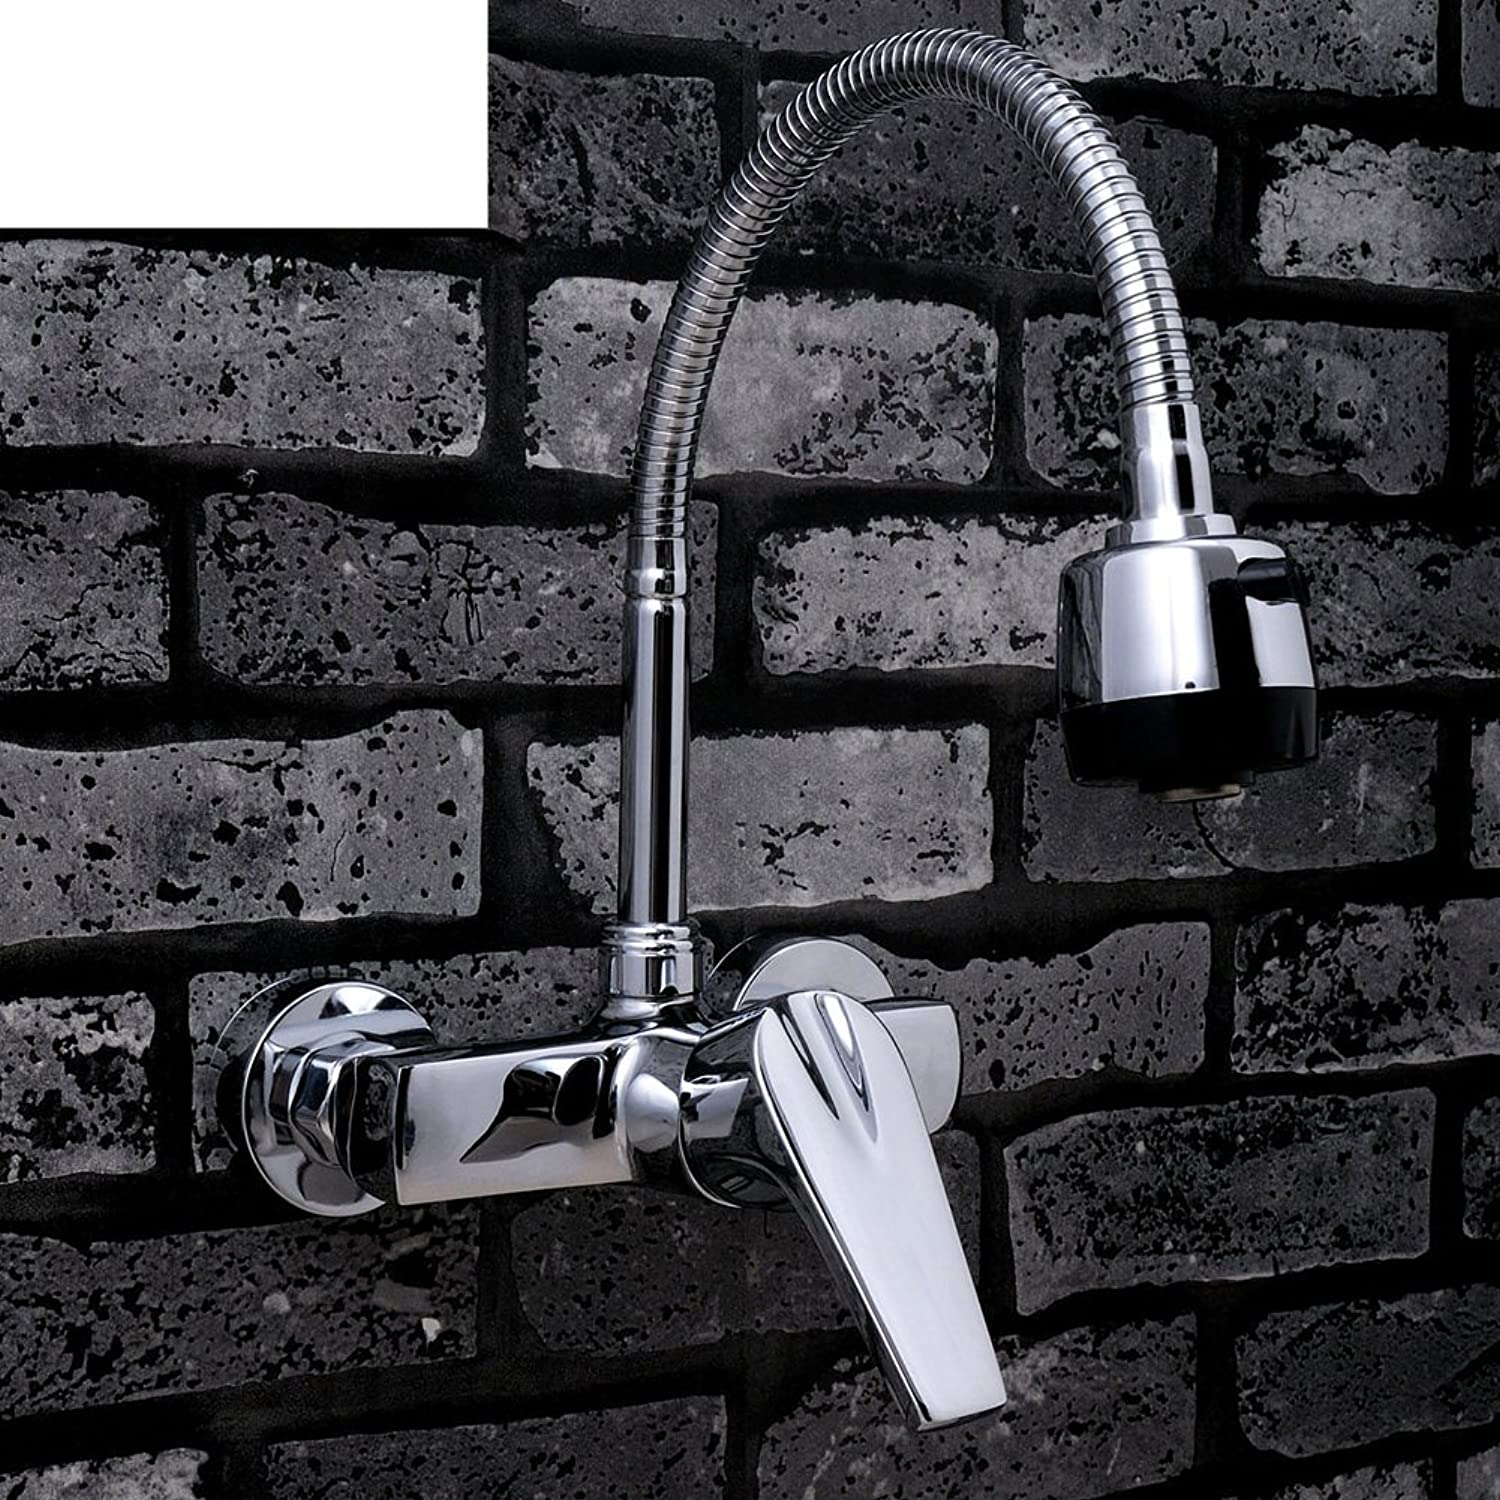 All Copper into The Wall-Type Faucet, Hot and Cold Faucet, Double Hole Basin Bathroom, Balcony Laundry Pool Swivel Faucet